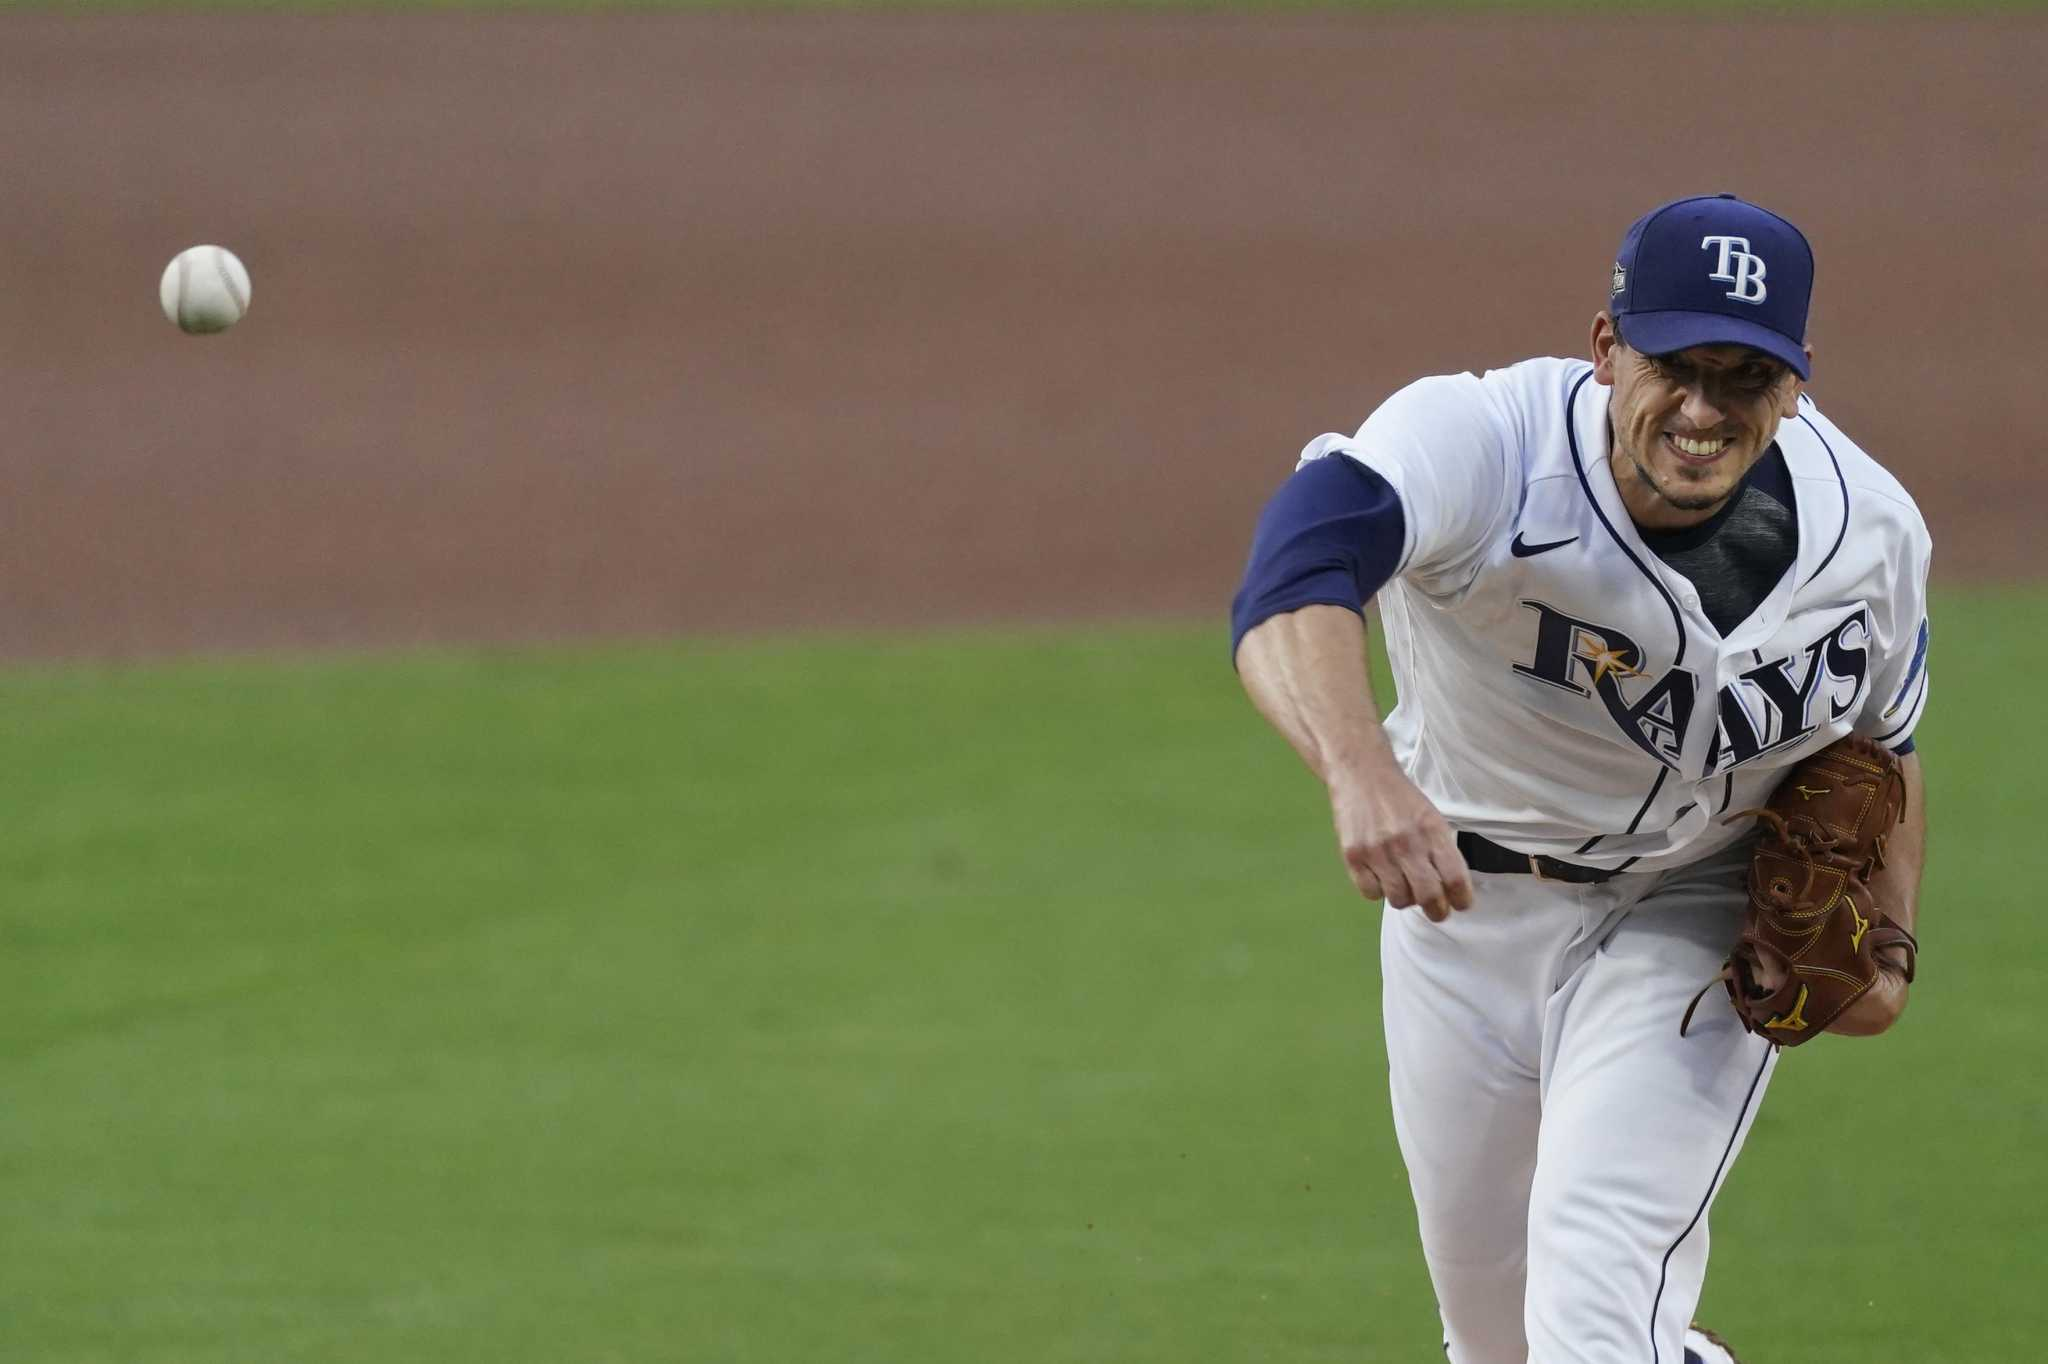 jeff jacobs back on world series stage ct s charlie morton still easy going kid from barlow ctinsider com https www ctinsider com sports jeffjacobs ctpost article jeff jacobs back on world series stage ct s 15663001 php